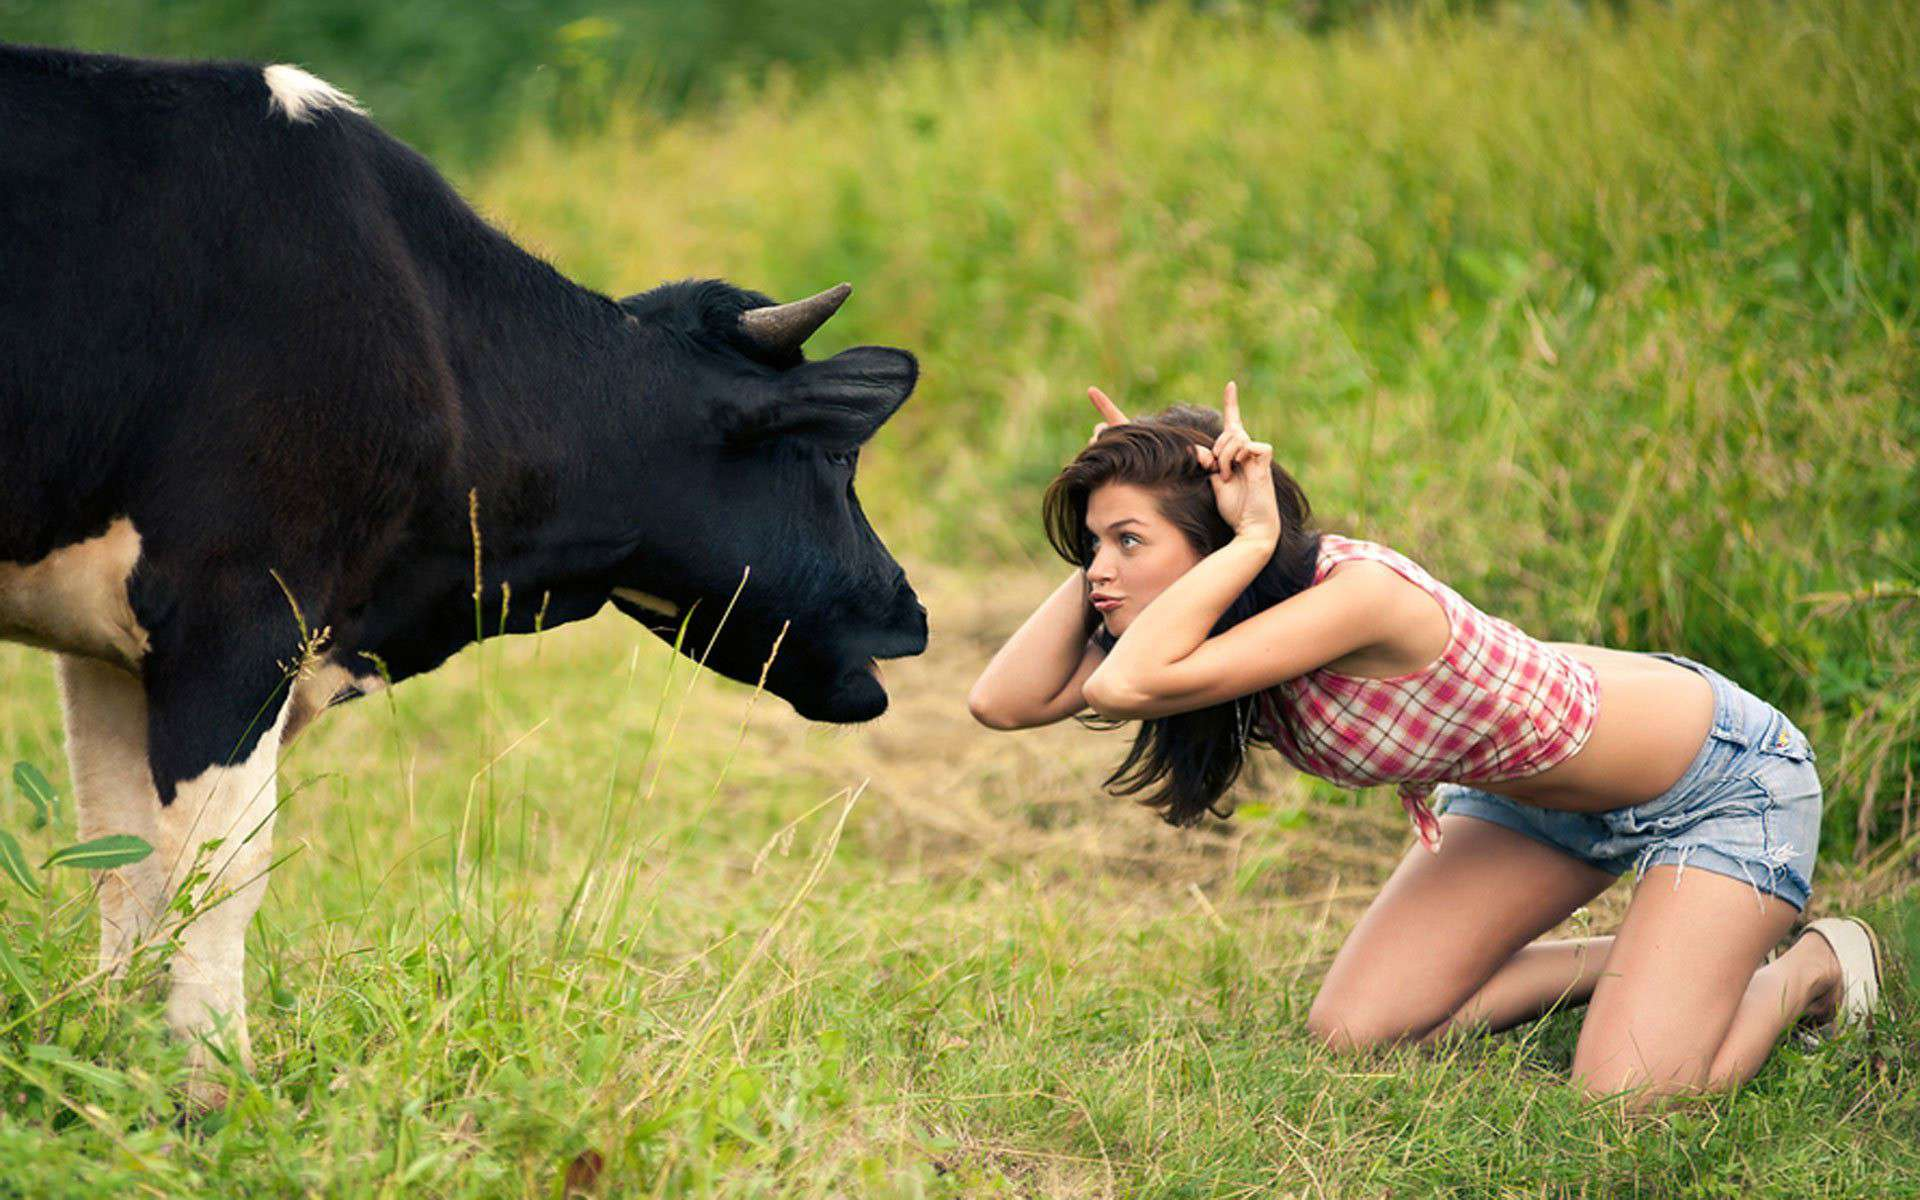 Cattle and women sex picture sexy galleries